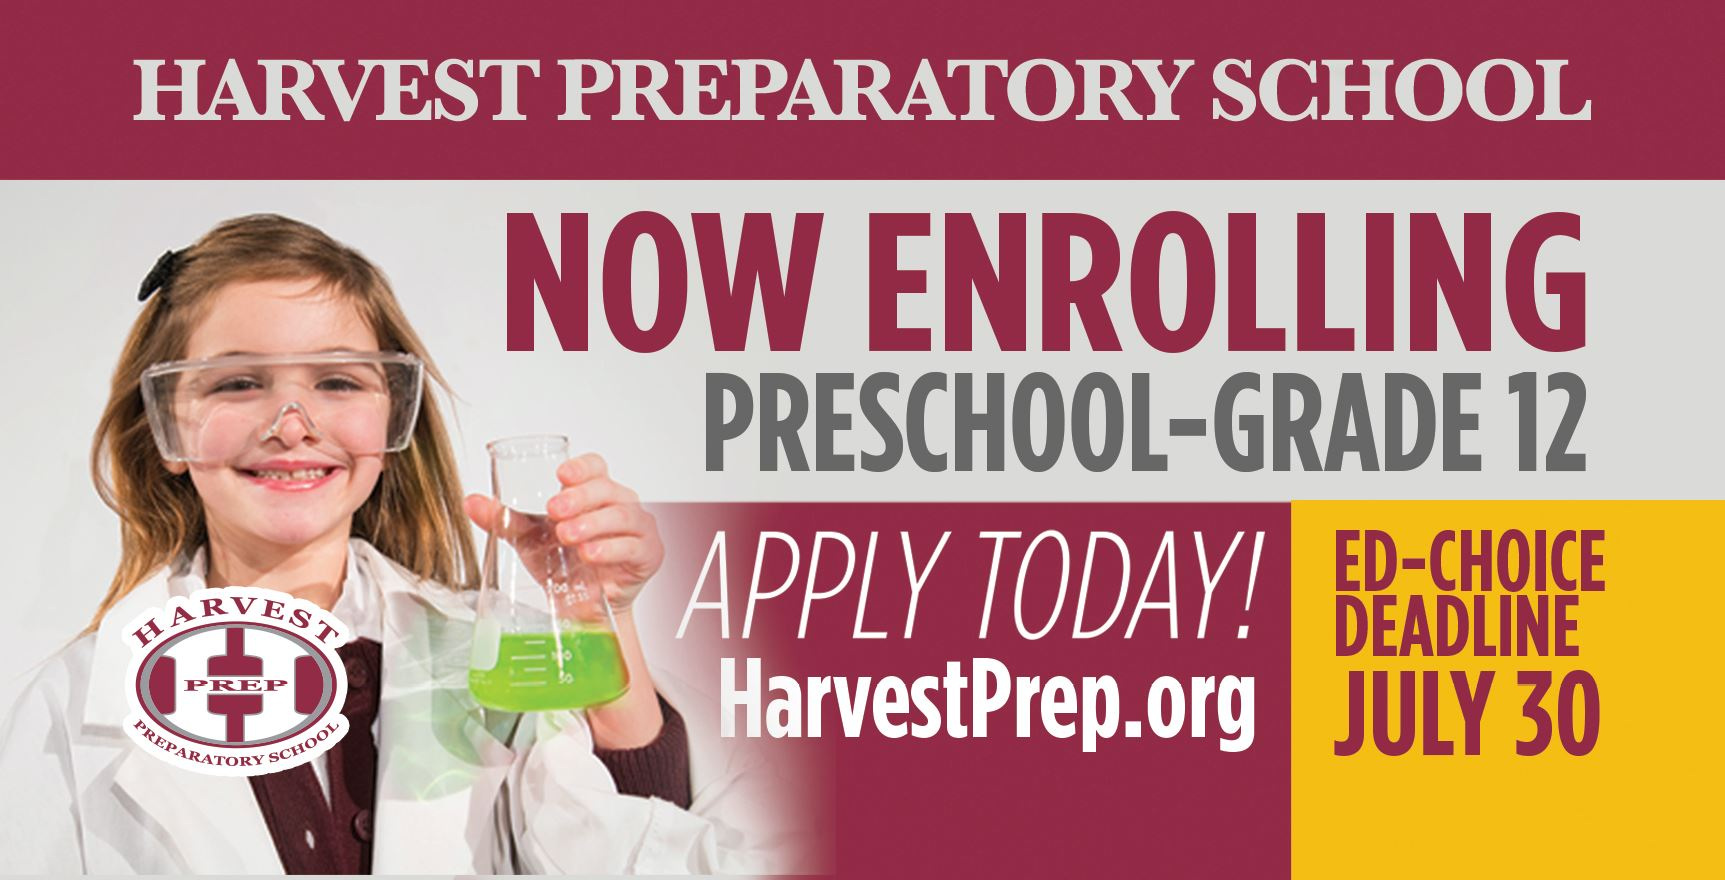 Harvest Preparatory School | Now Enrolling: Preschool - Grade 12 | Apply Today! HarvestPrep.org | Ed-Choice Deadline July 30